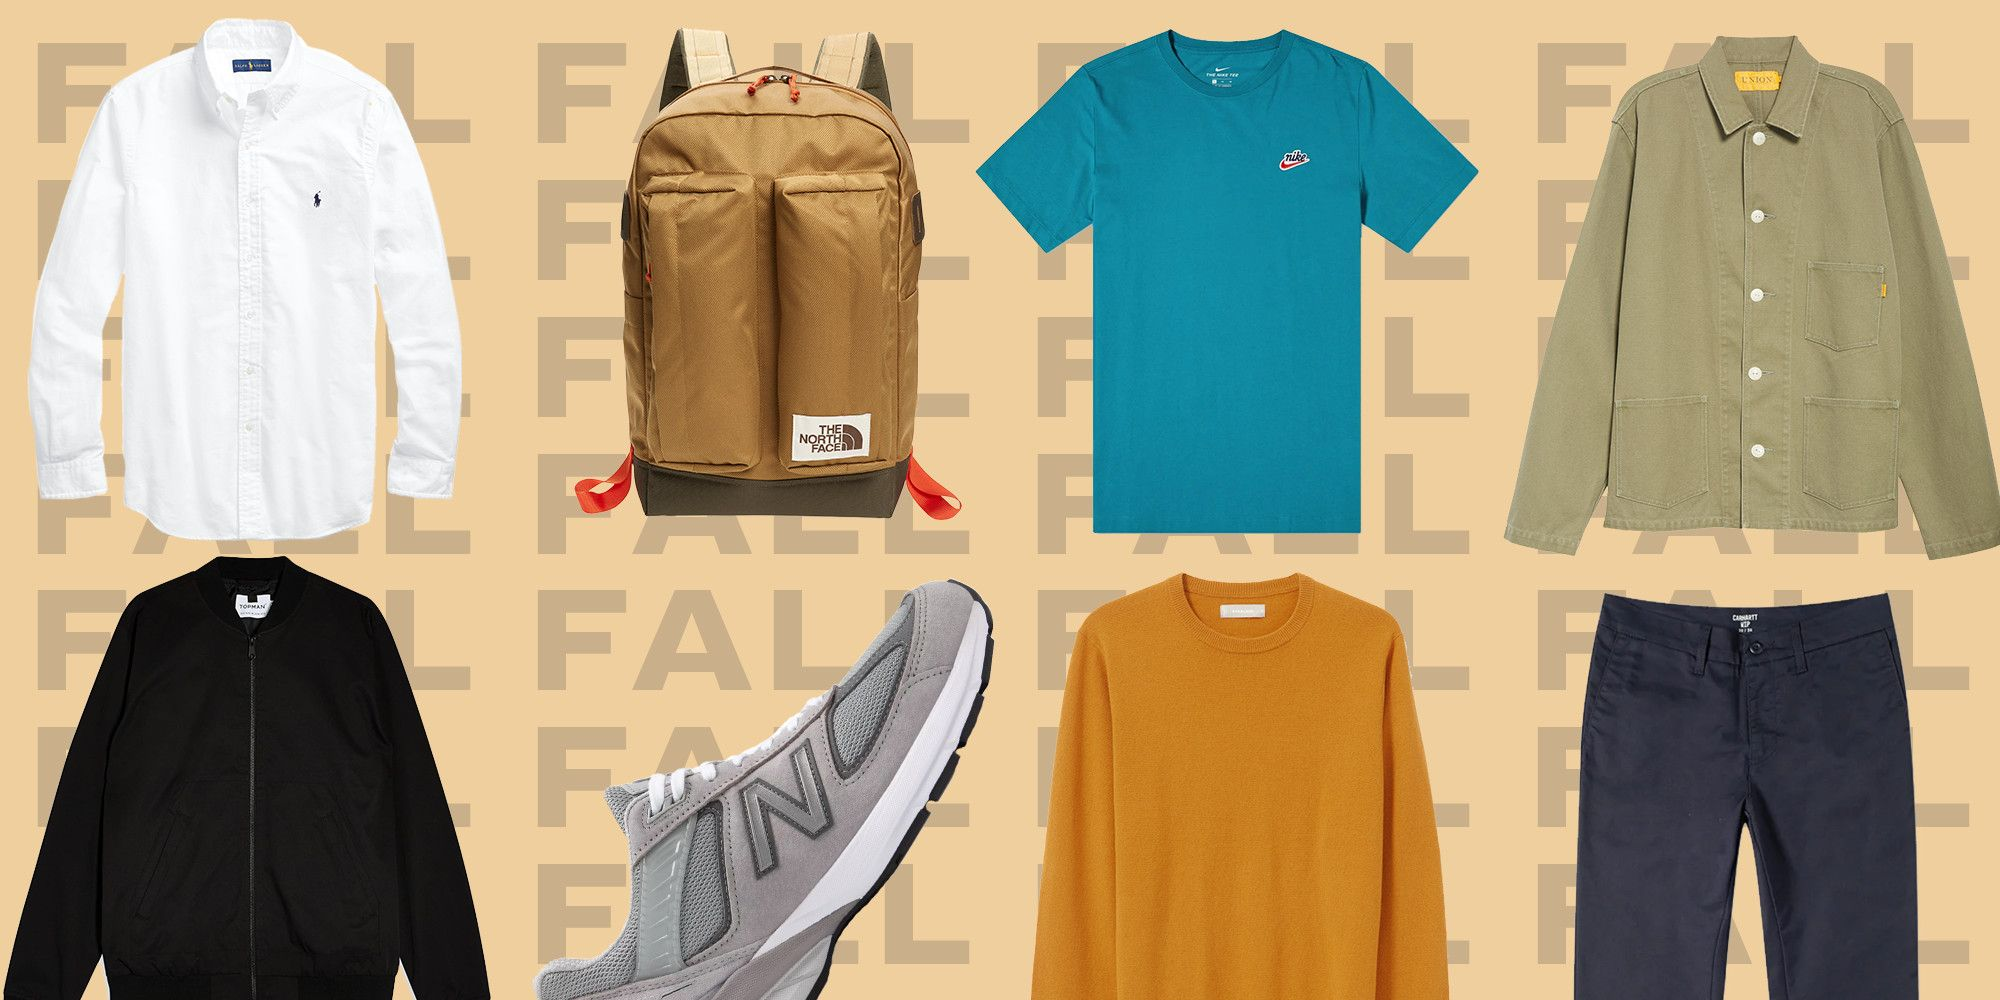 46473cc2 3 Perfect Men's Fall Outfits 2019 - Stylish Autumn Outfit Ideas